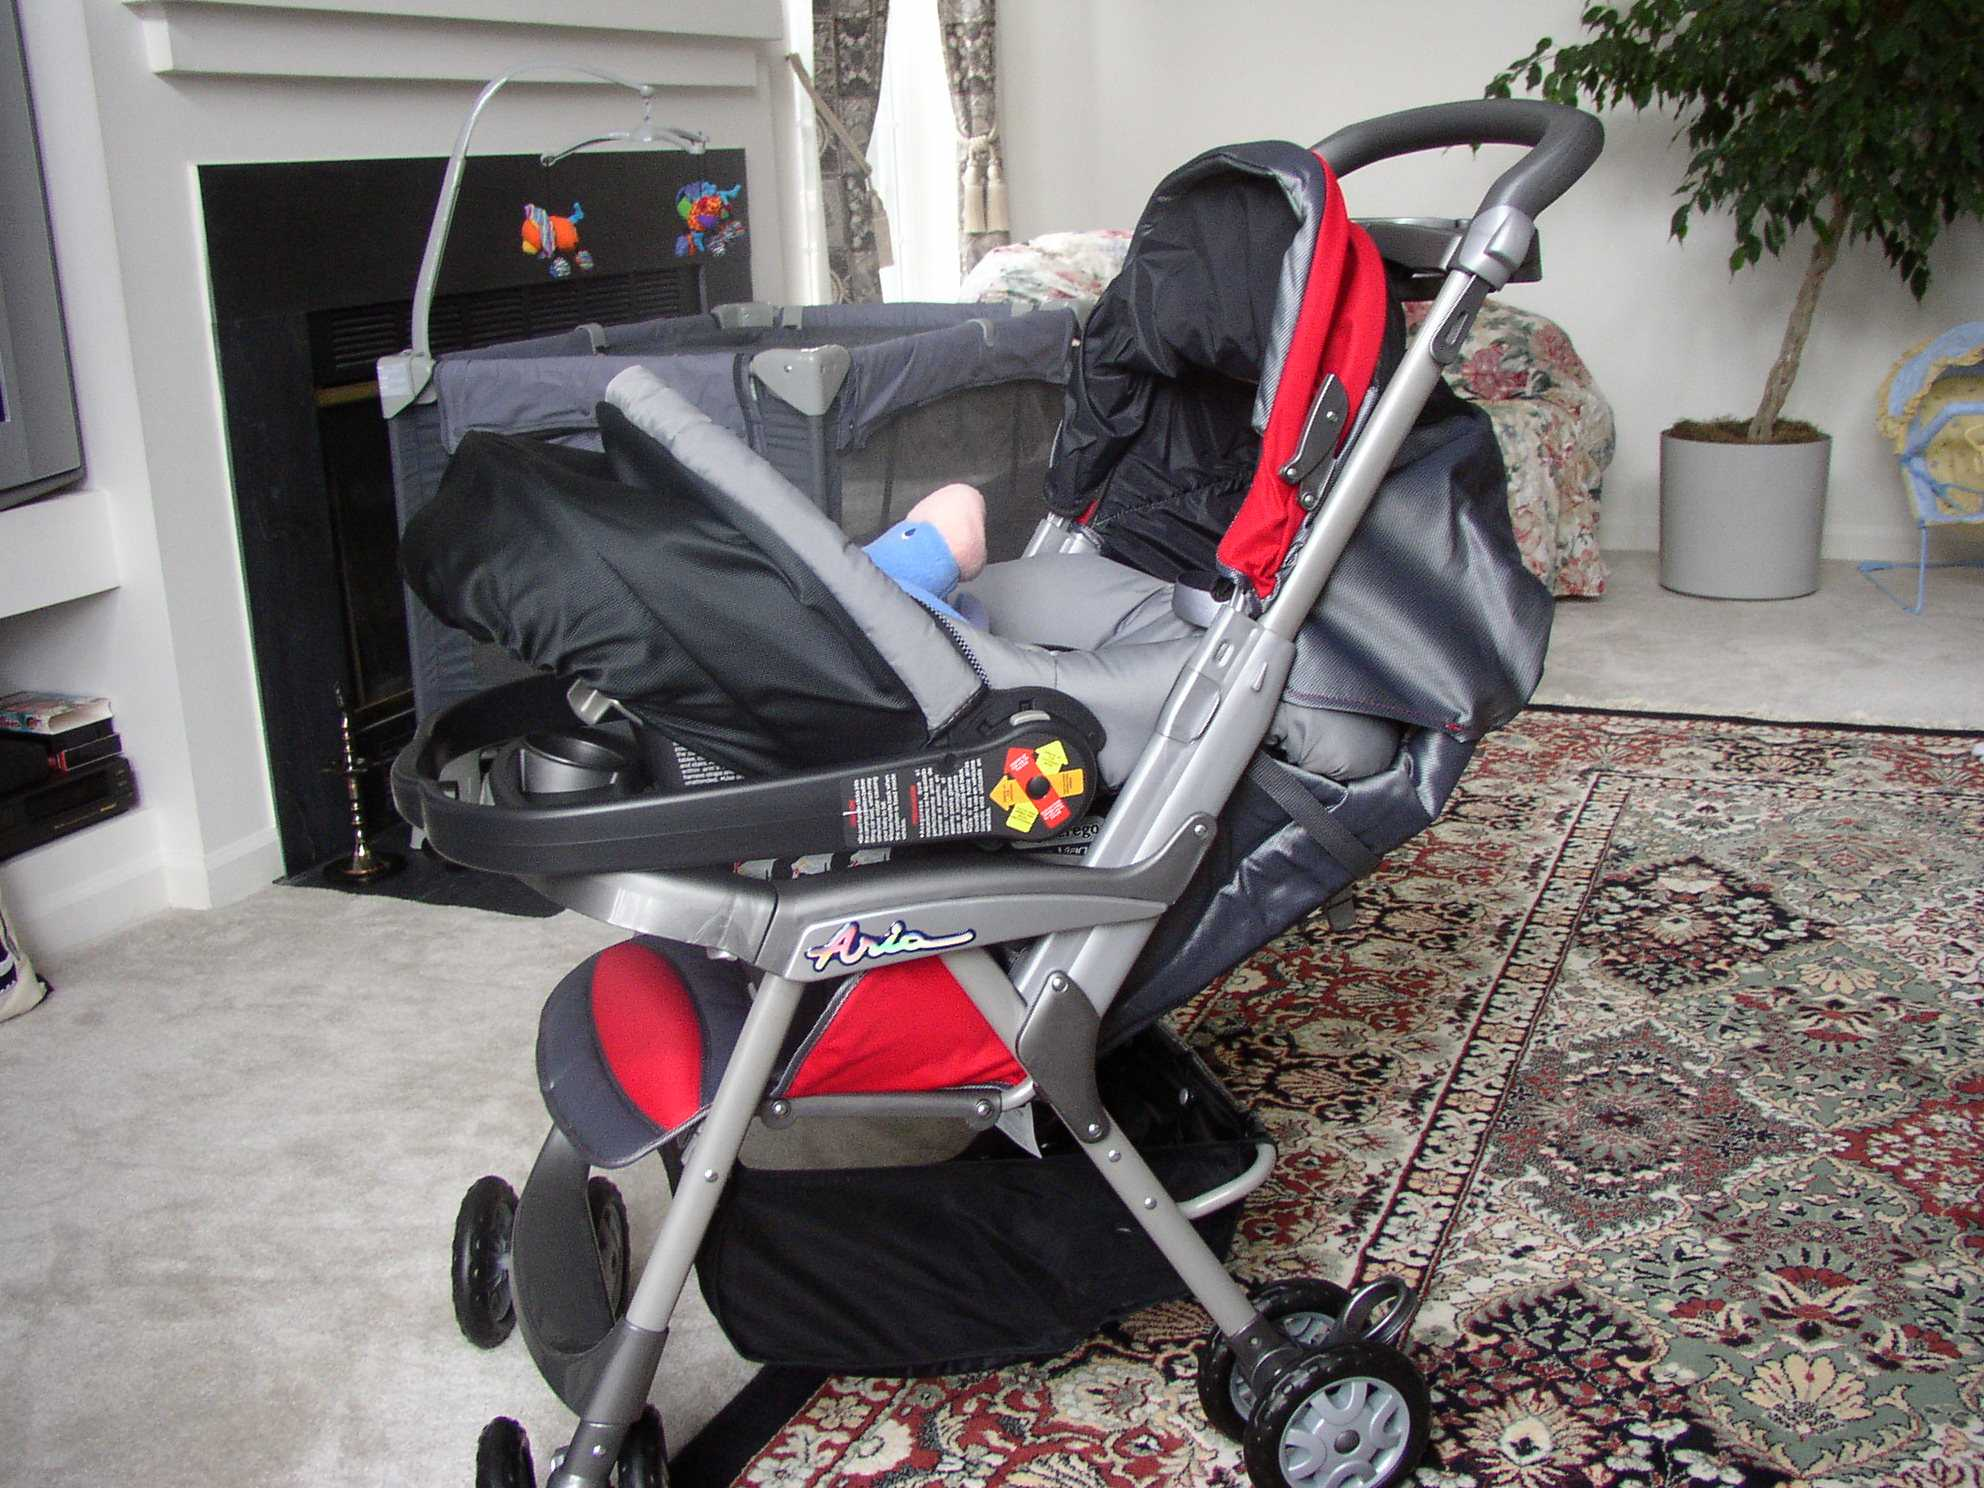 Car Seat Carrier Stroller Pictures Of The Stroller Car Seat Baby Carrier And Playpen